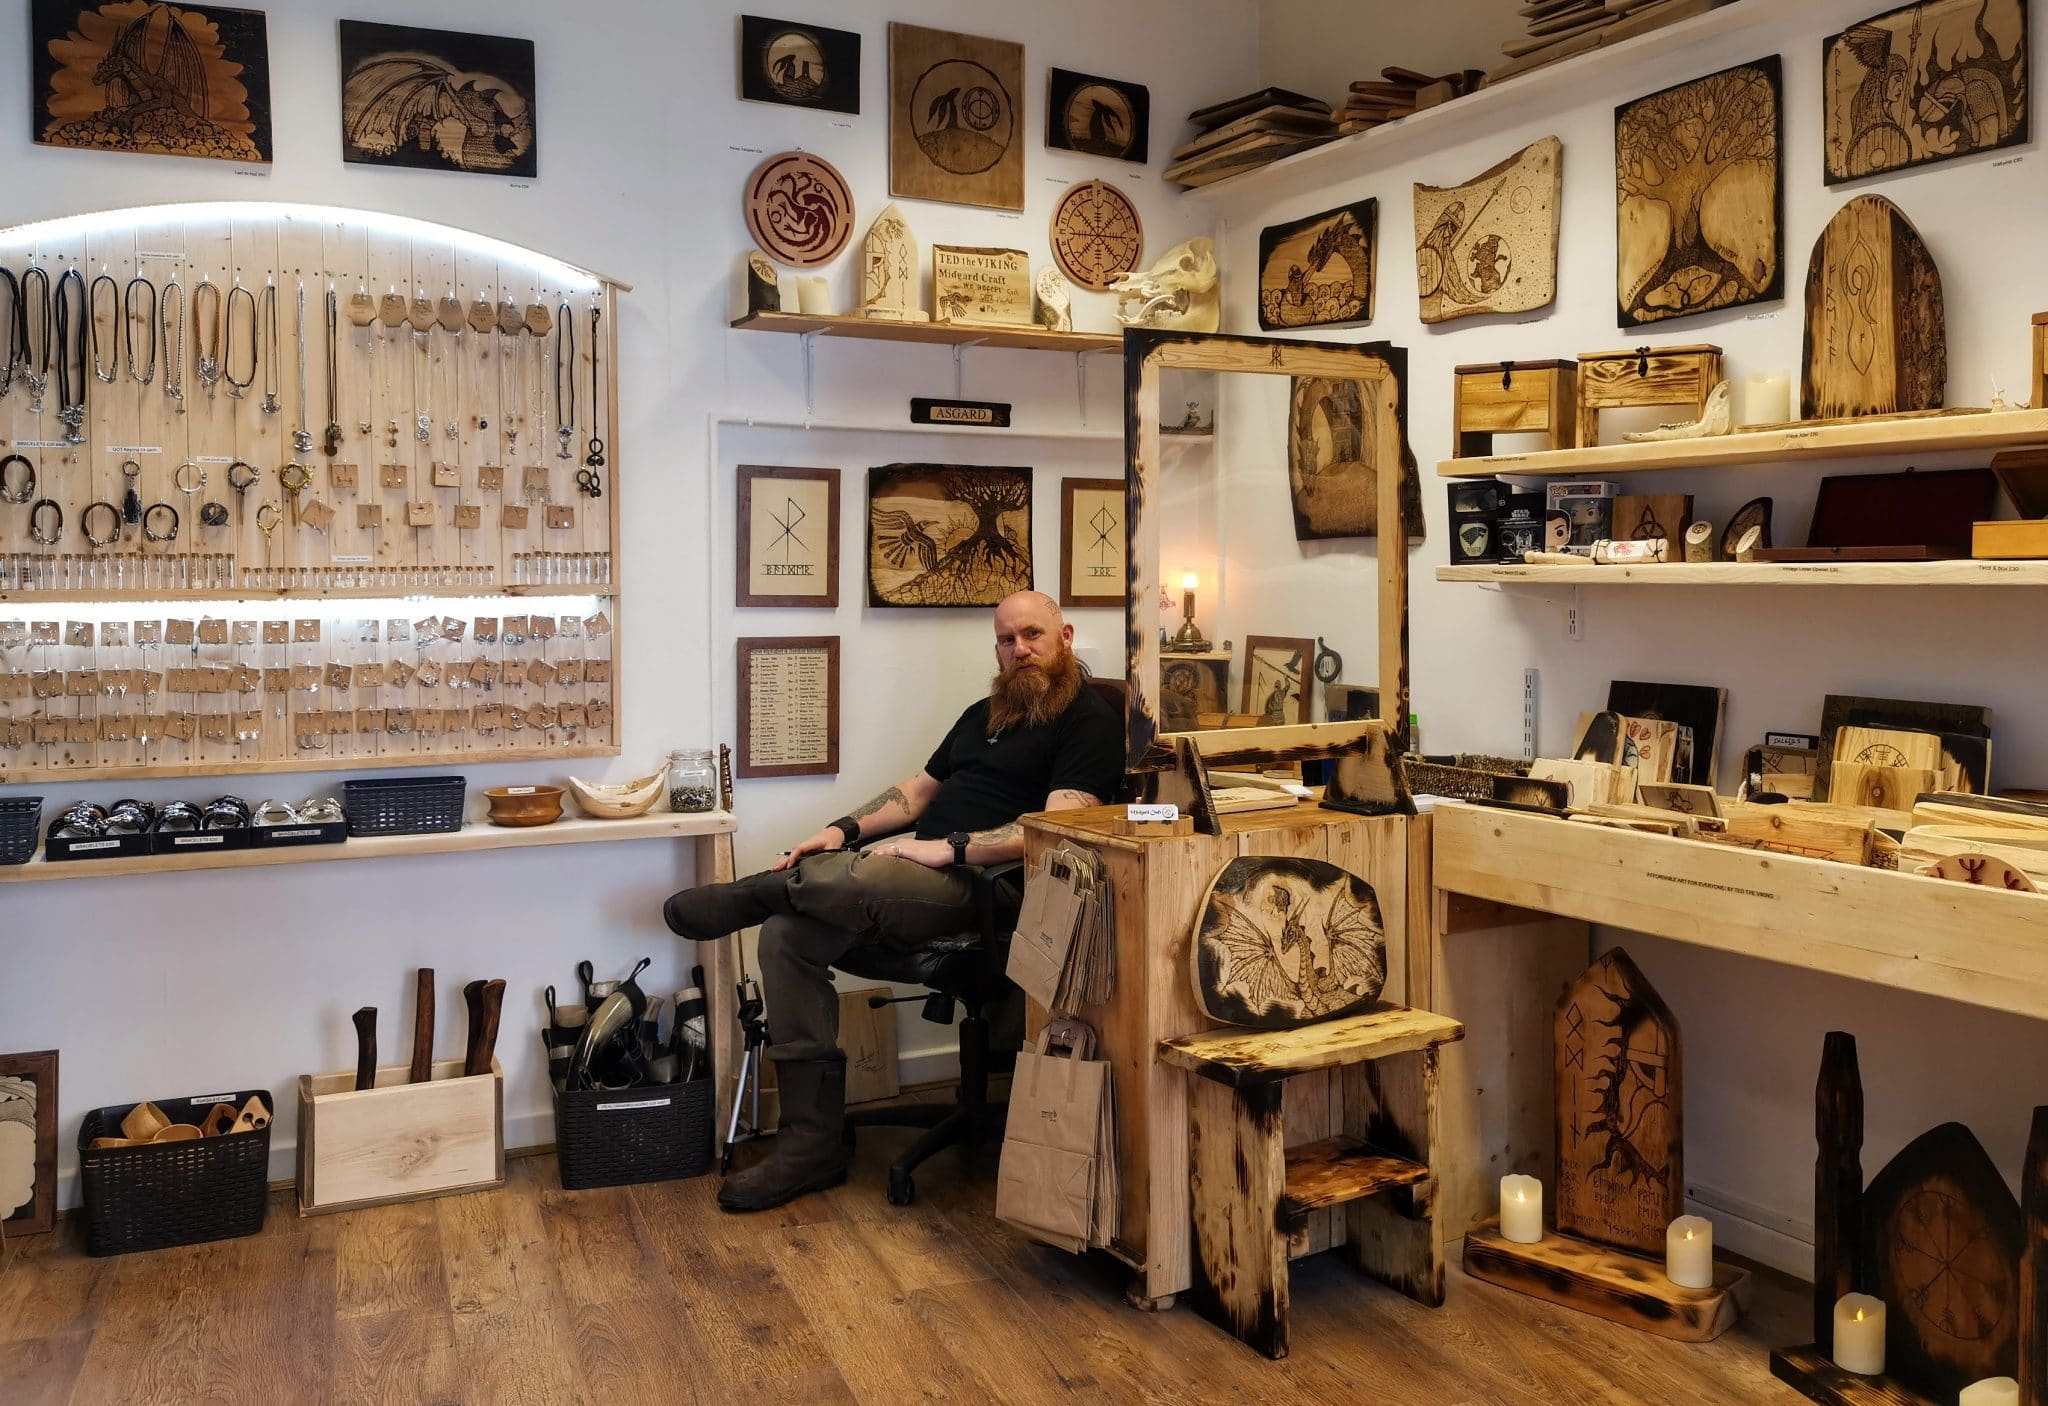 Midgard Craft Shop in Glastonbury